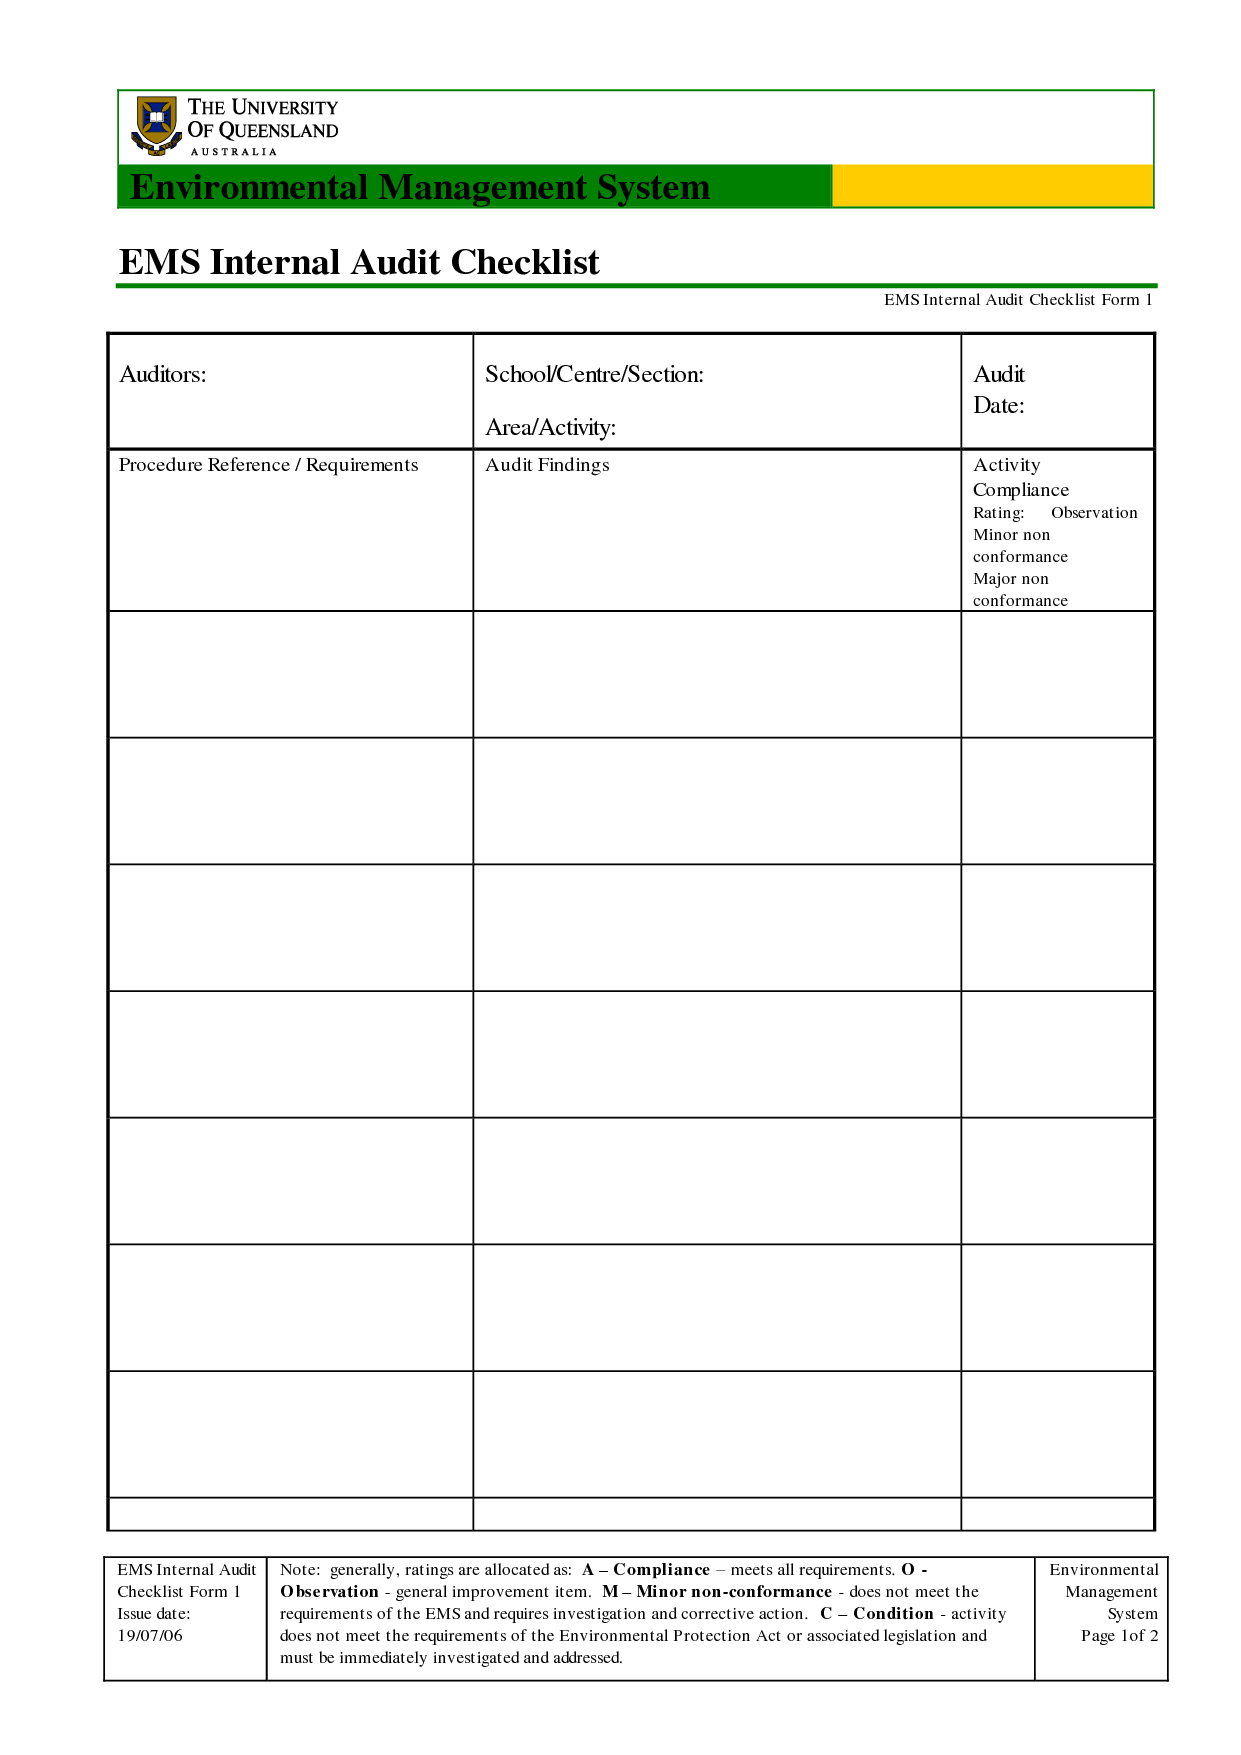 Example Safety Audit Report and Best Ems Internal Audit Checklist form Template with Table for